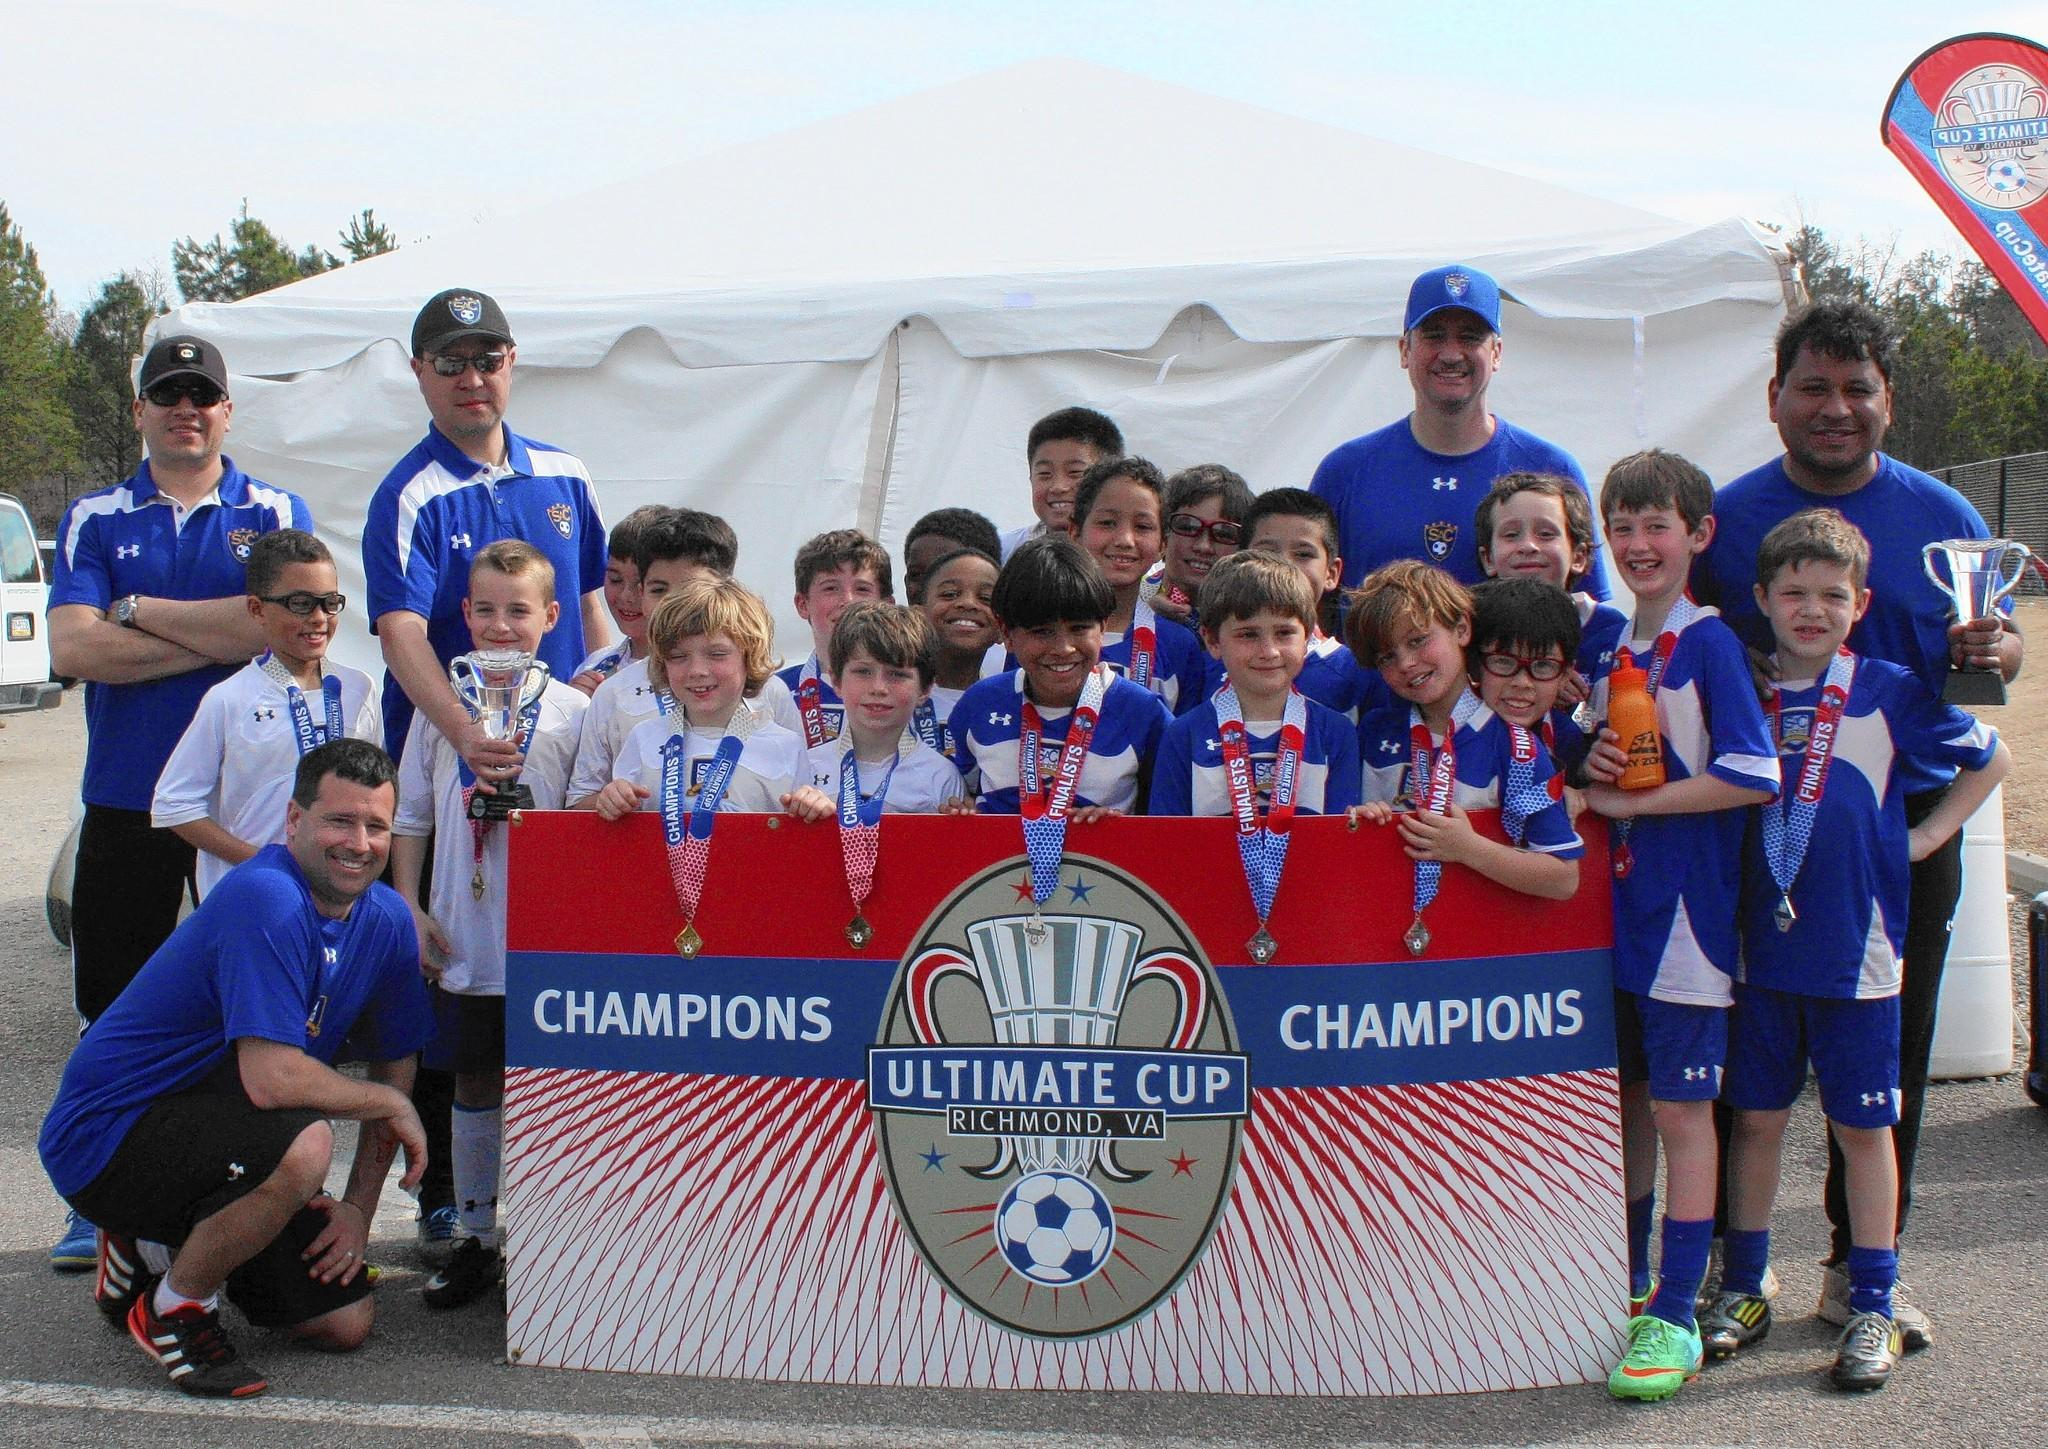 The SAC U9 Classic Blue and Premier White boys each reached the championship game of the Richmond tournament March 2.